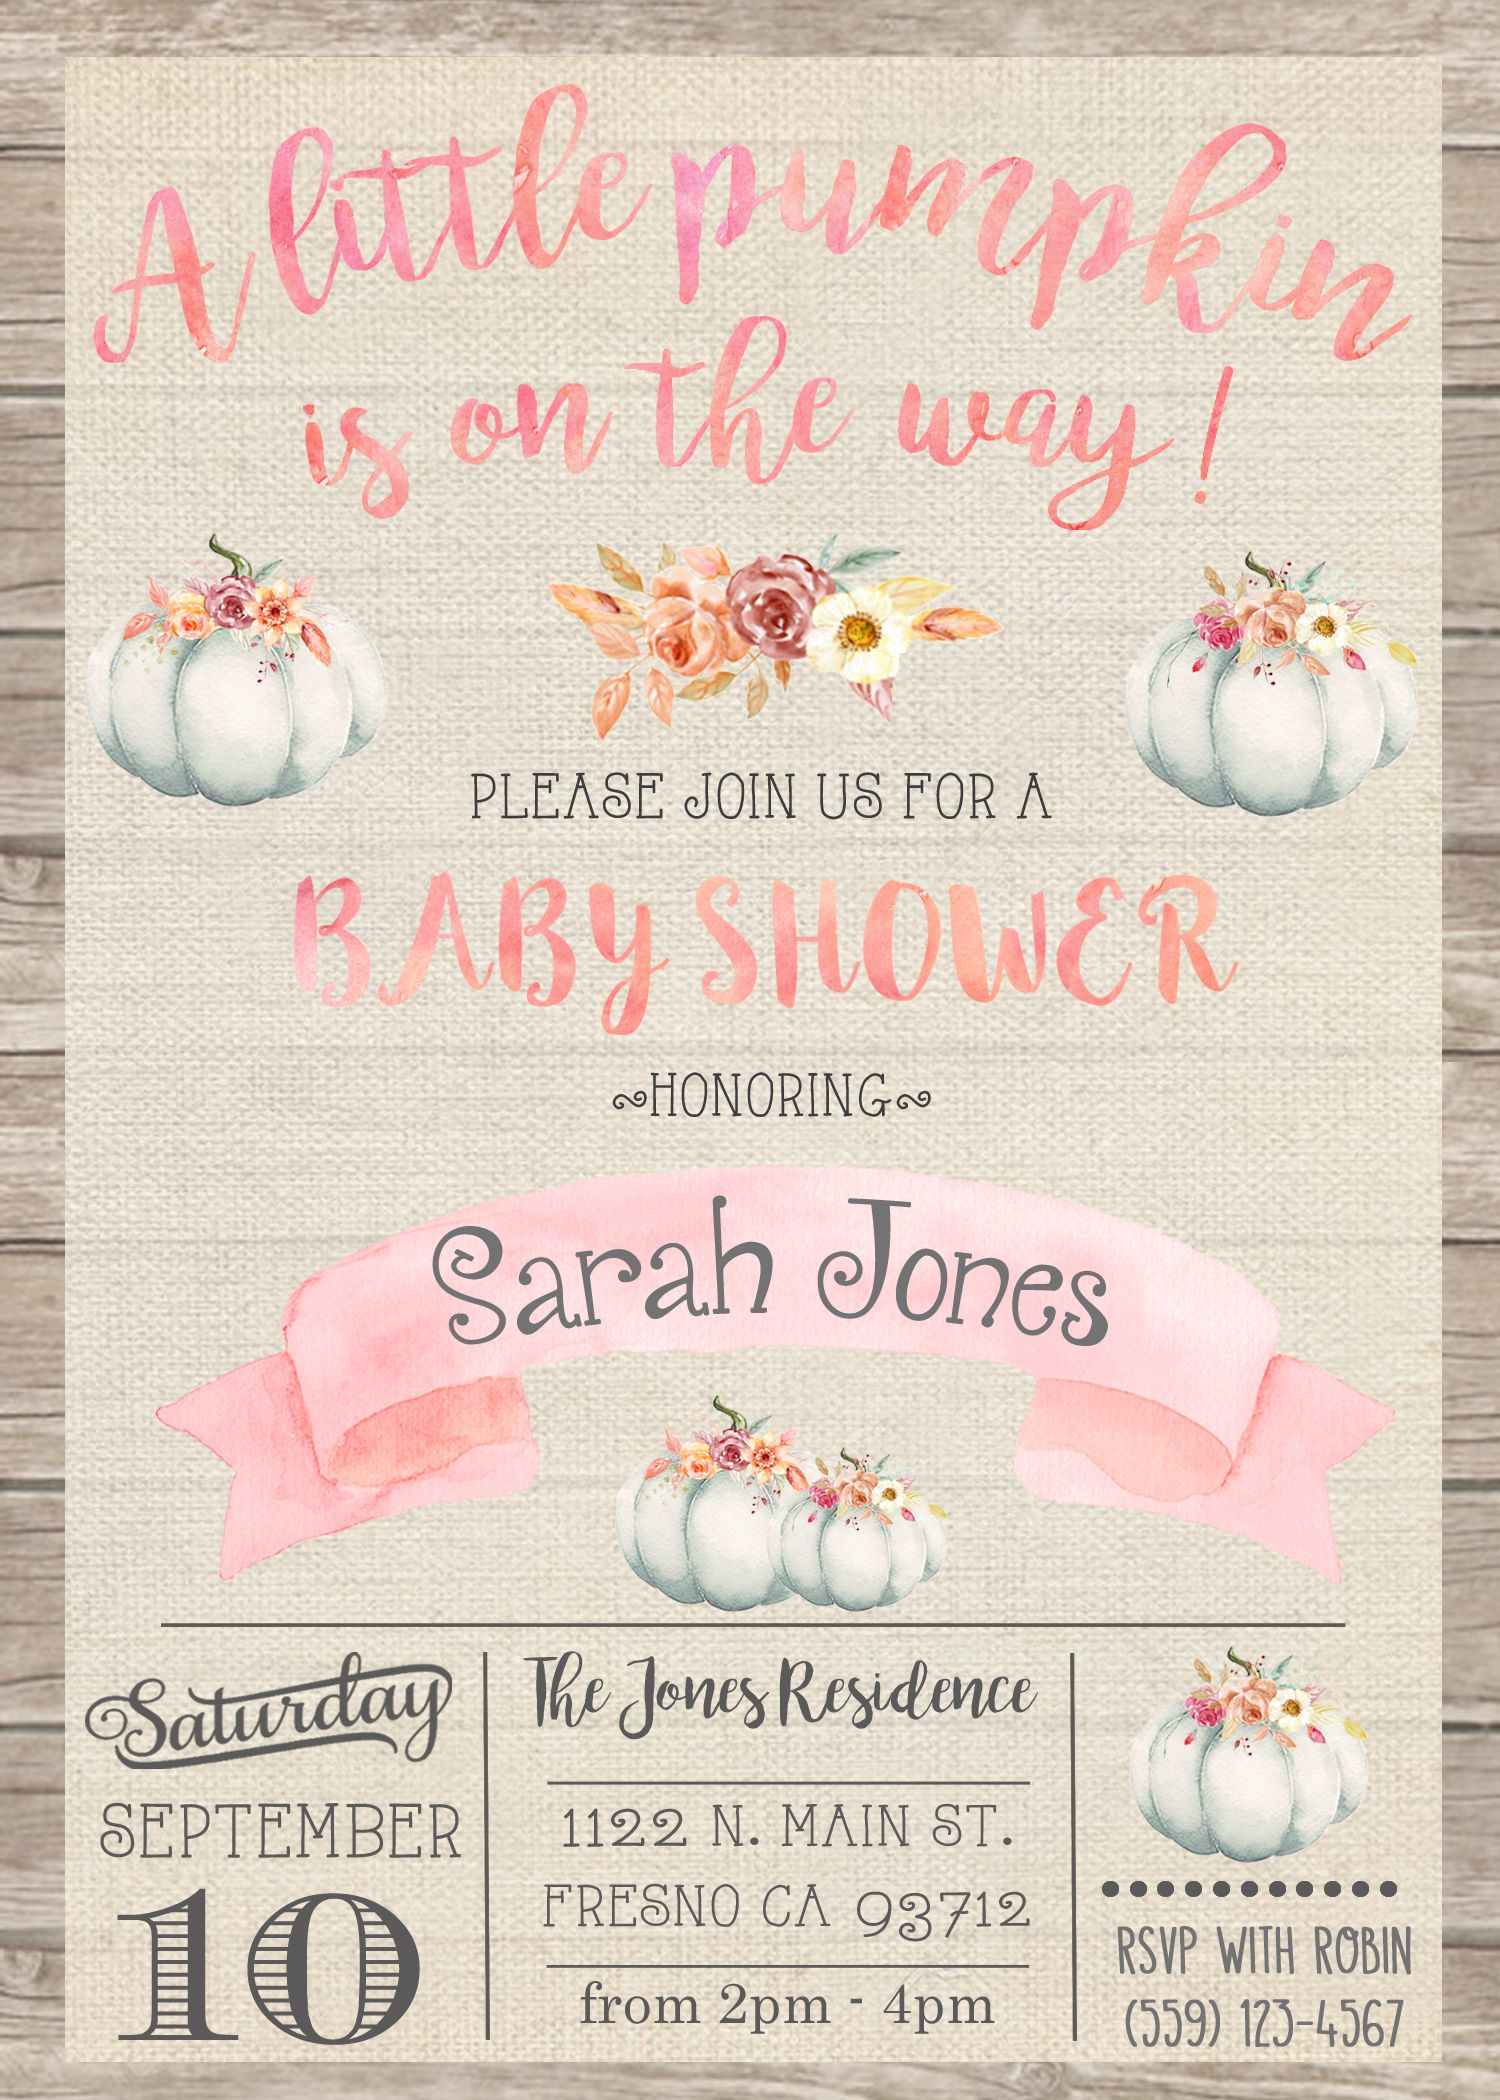 Little Pumpkin Baby Shower Invitation Invite Rustic Shabby Chic Pink ...